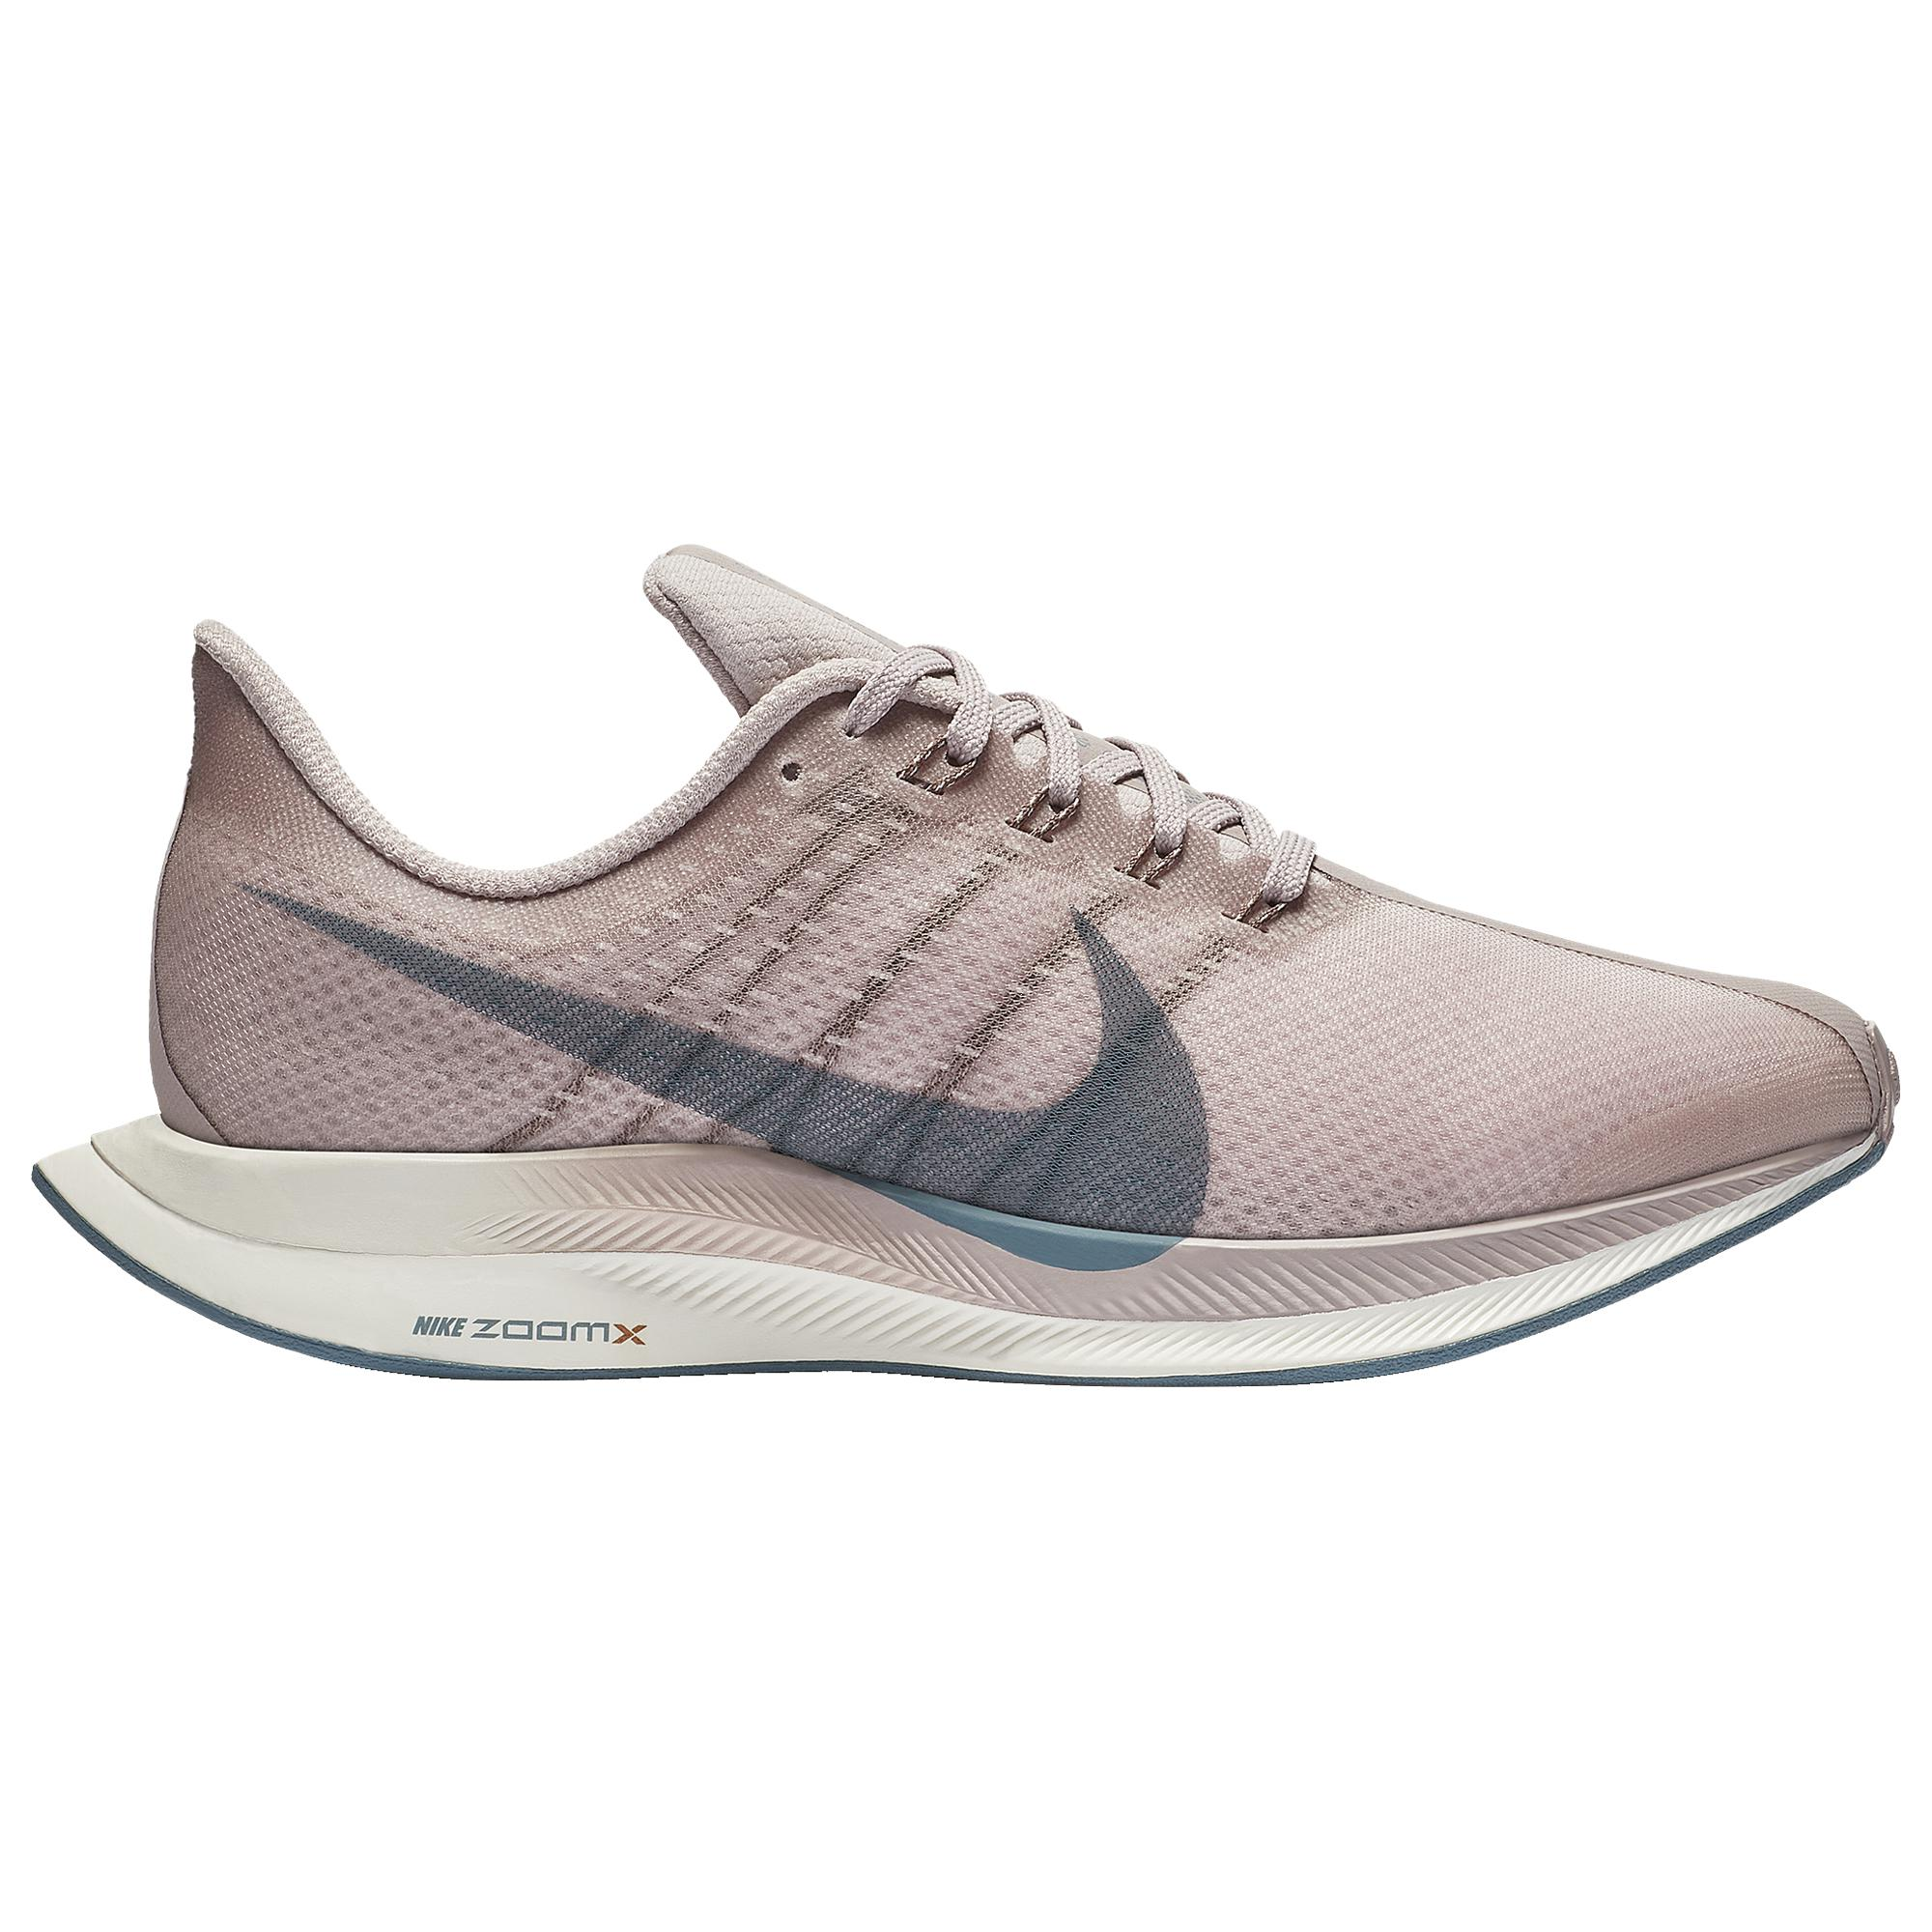 on sale 40e42 379f1 Nike. Women s Gray Air Zoom Pegasus 35 Turbo